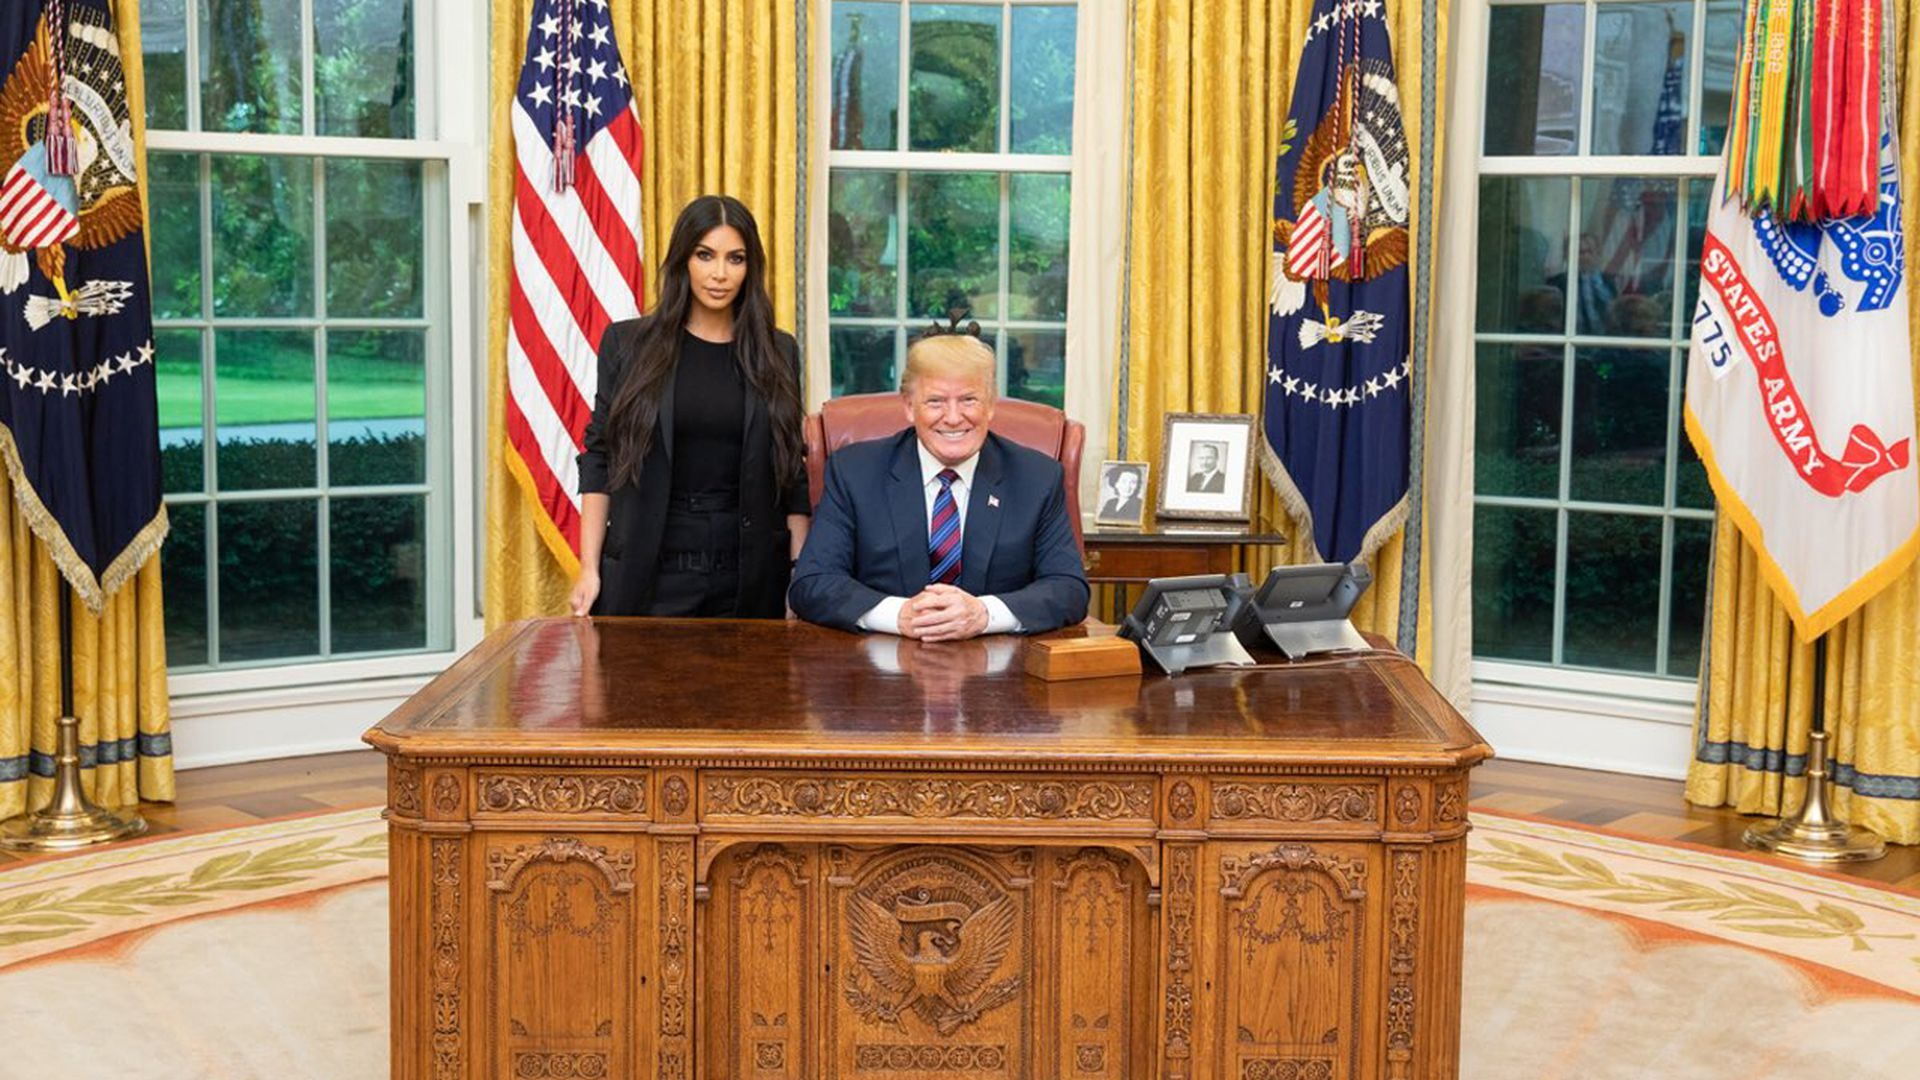 Kim Kardashian and President Trump in the Oval Office